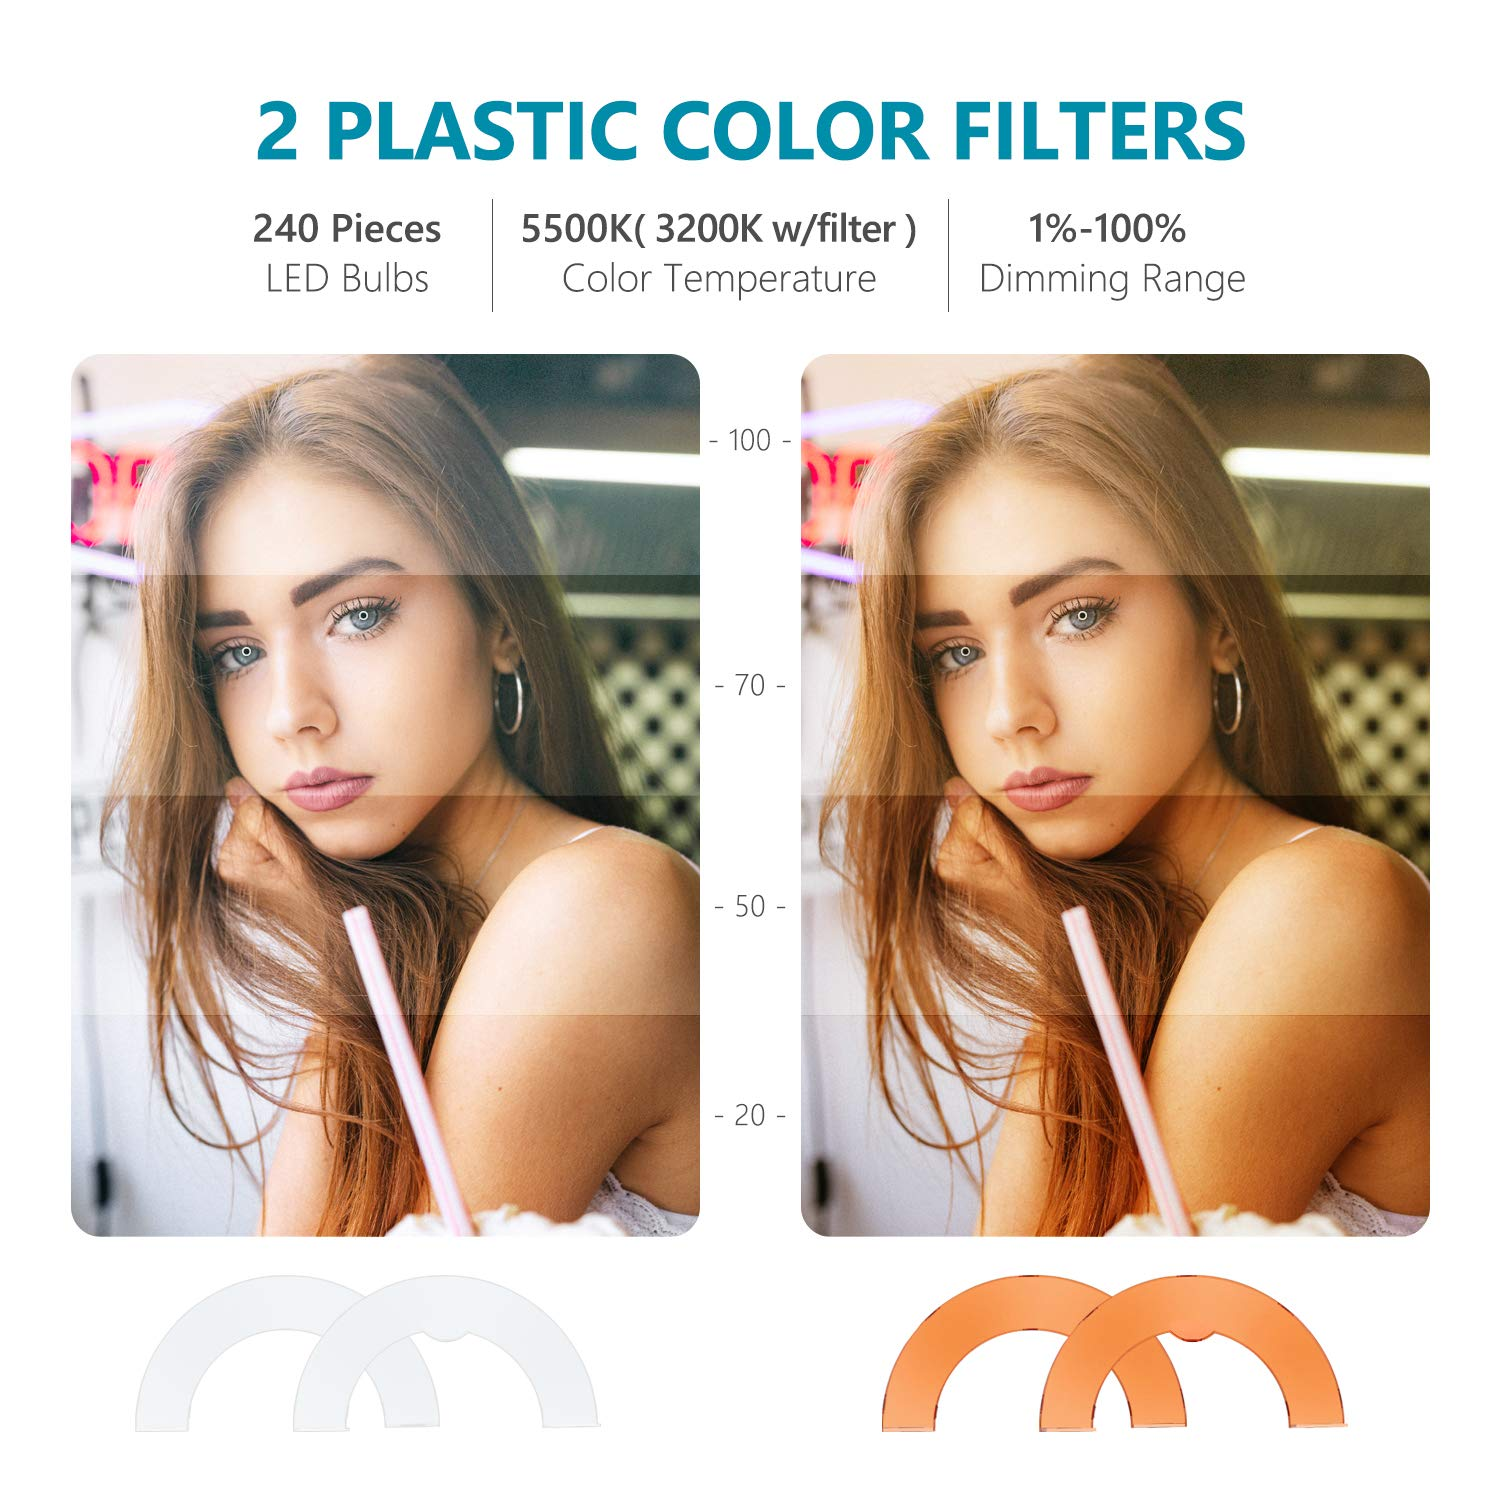 Neewer Ring Light 13-inch RGB Dimmable LED Ring Light with Foldable Table-top Bracket//Phone Holder//Ball Head 8 RGB Colors and 3200K-5600K Colors Desktop Ring Light for Selfie Makeup YouTube Video